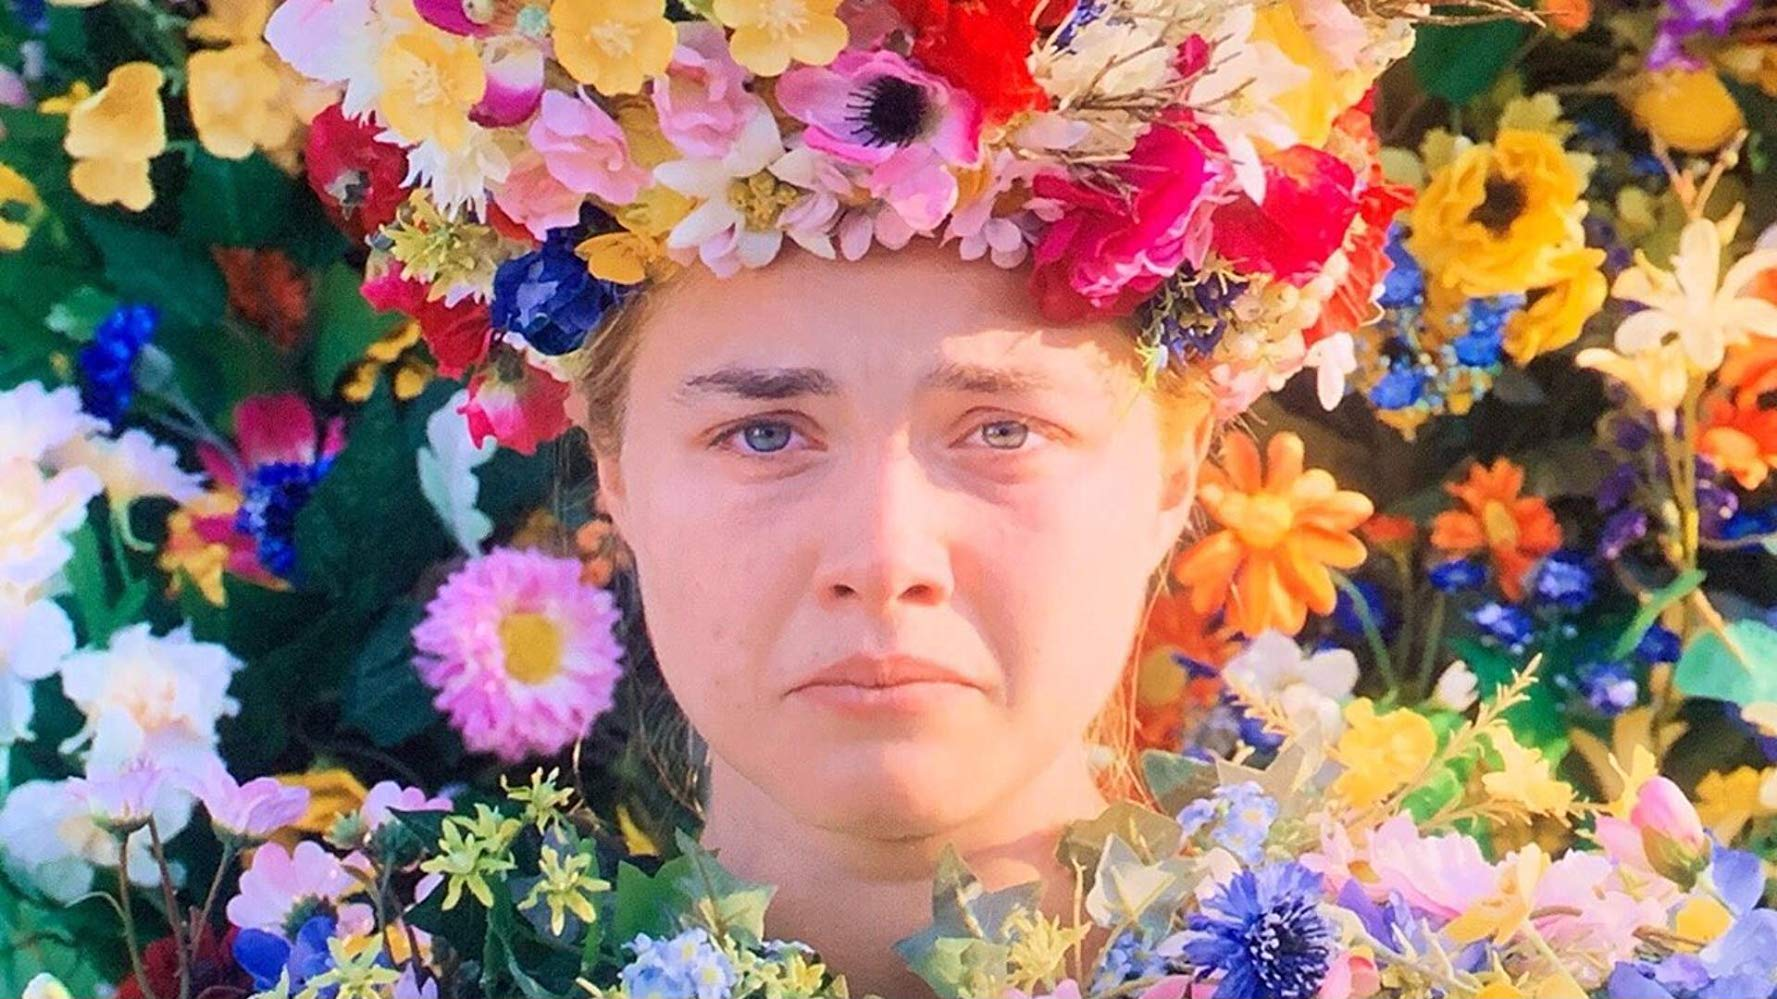 [News] Bring Home MIDSOMMAR This October